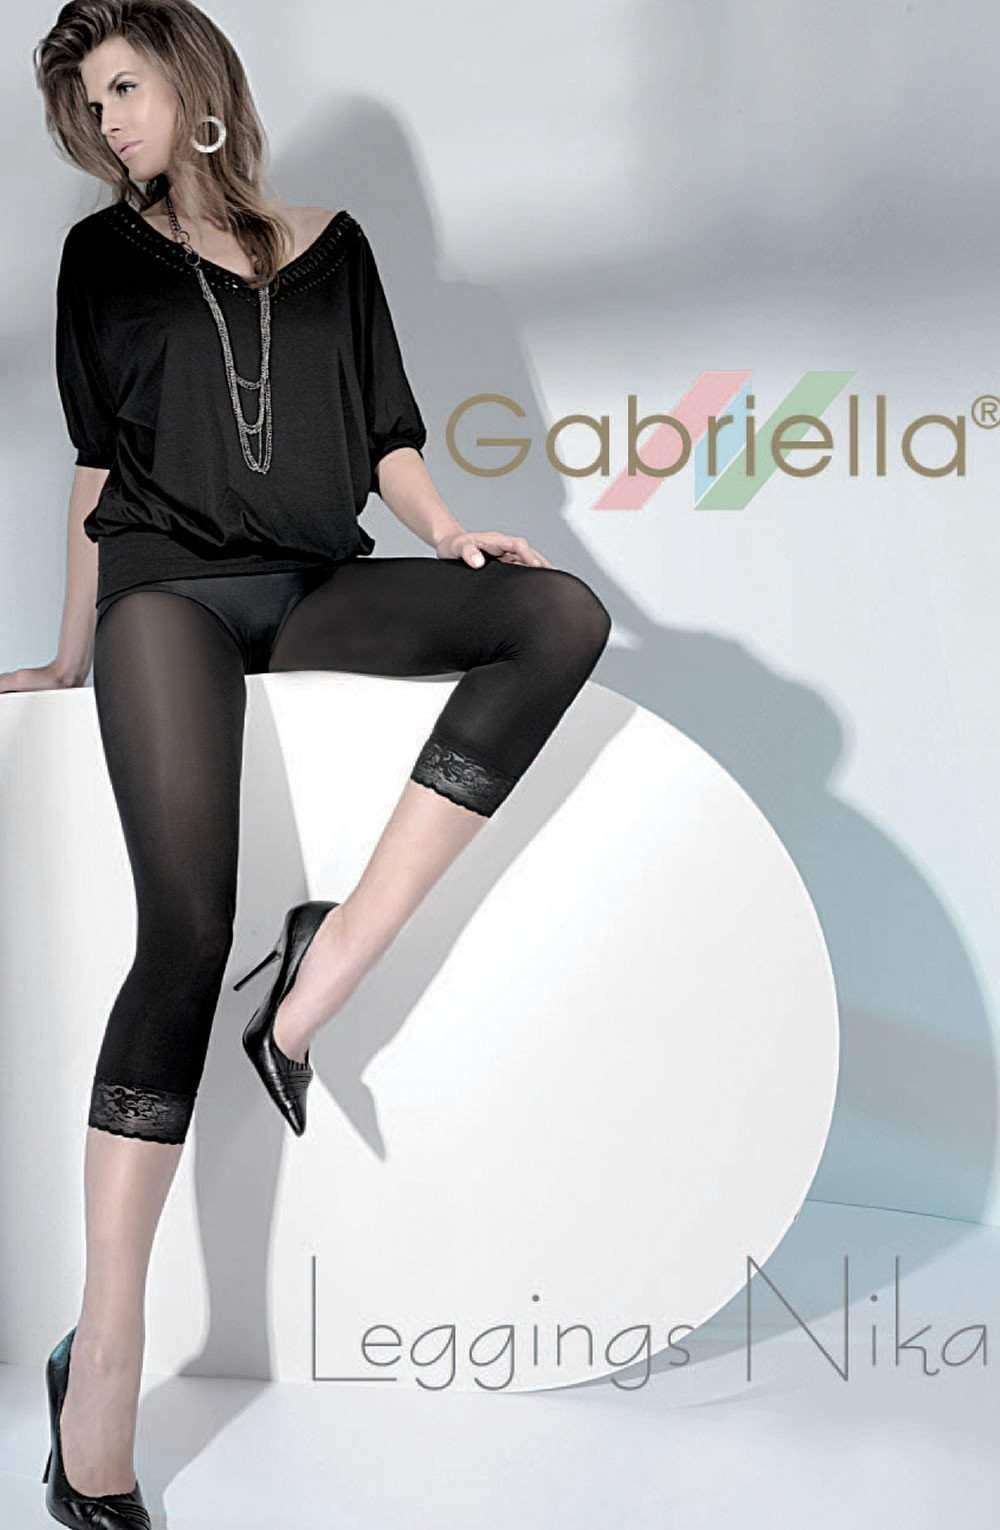 Nika Leggings in Nero by Gabriella - Gabriella - Katys Boutique Lingerie USA